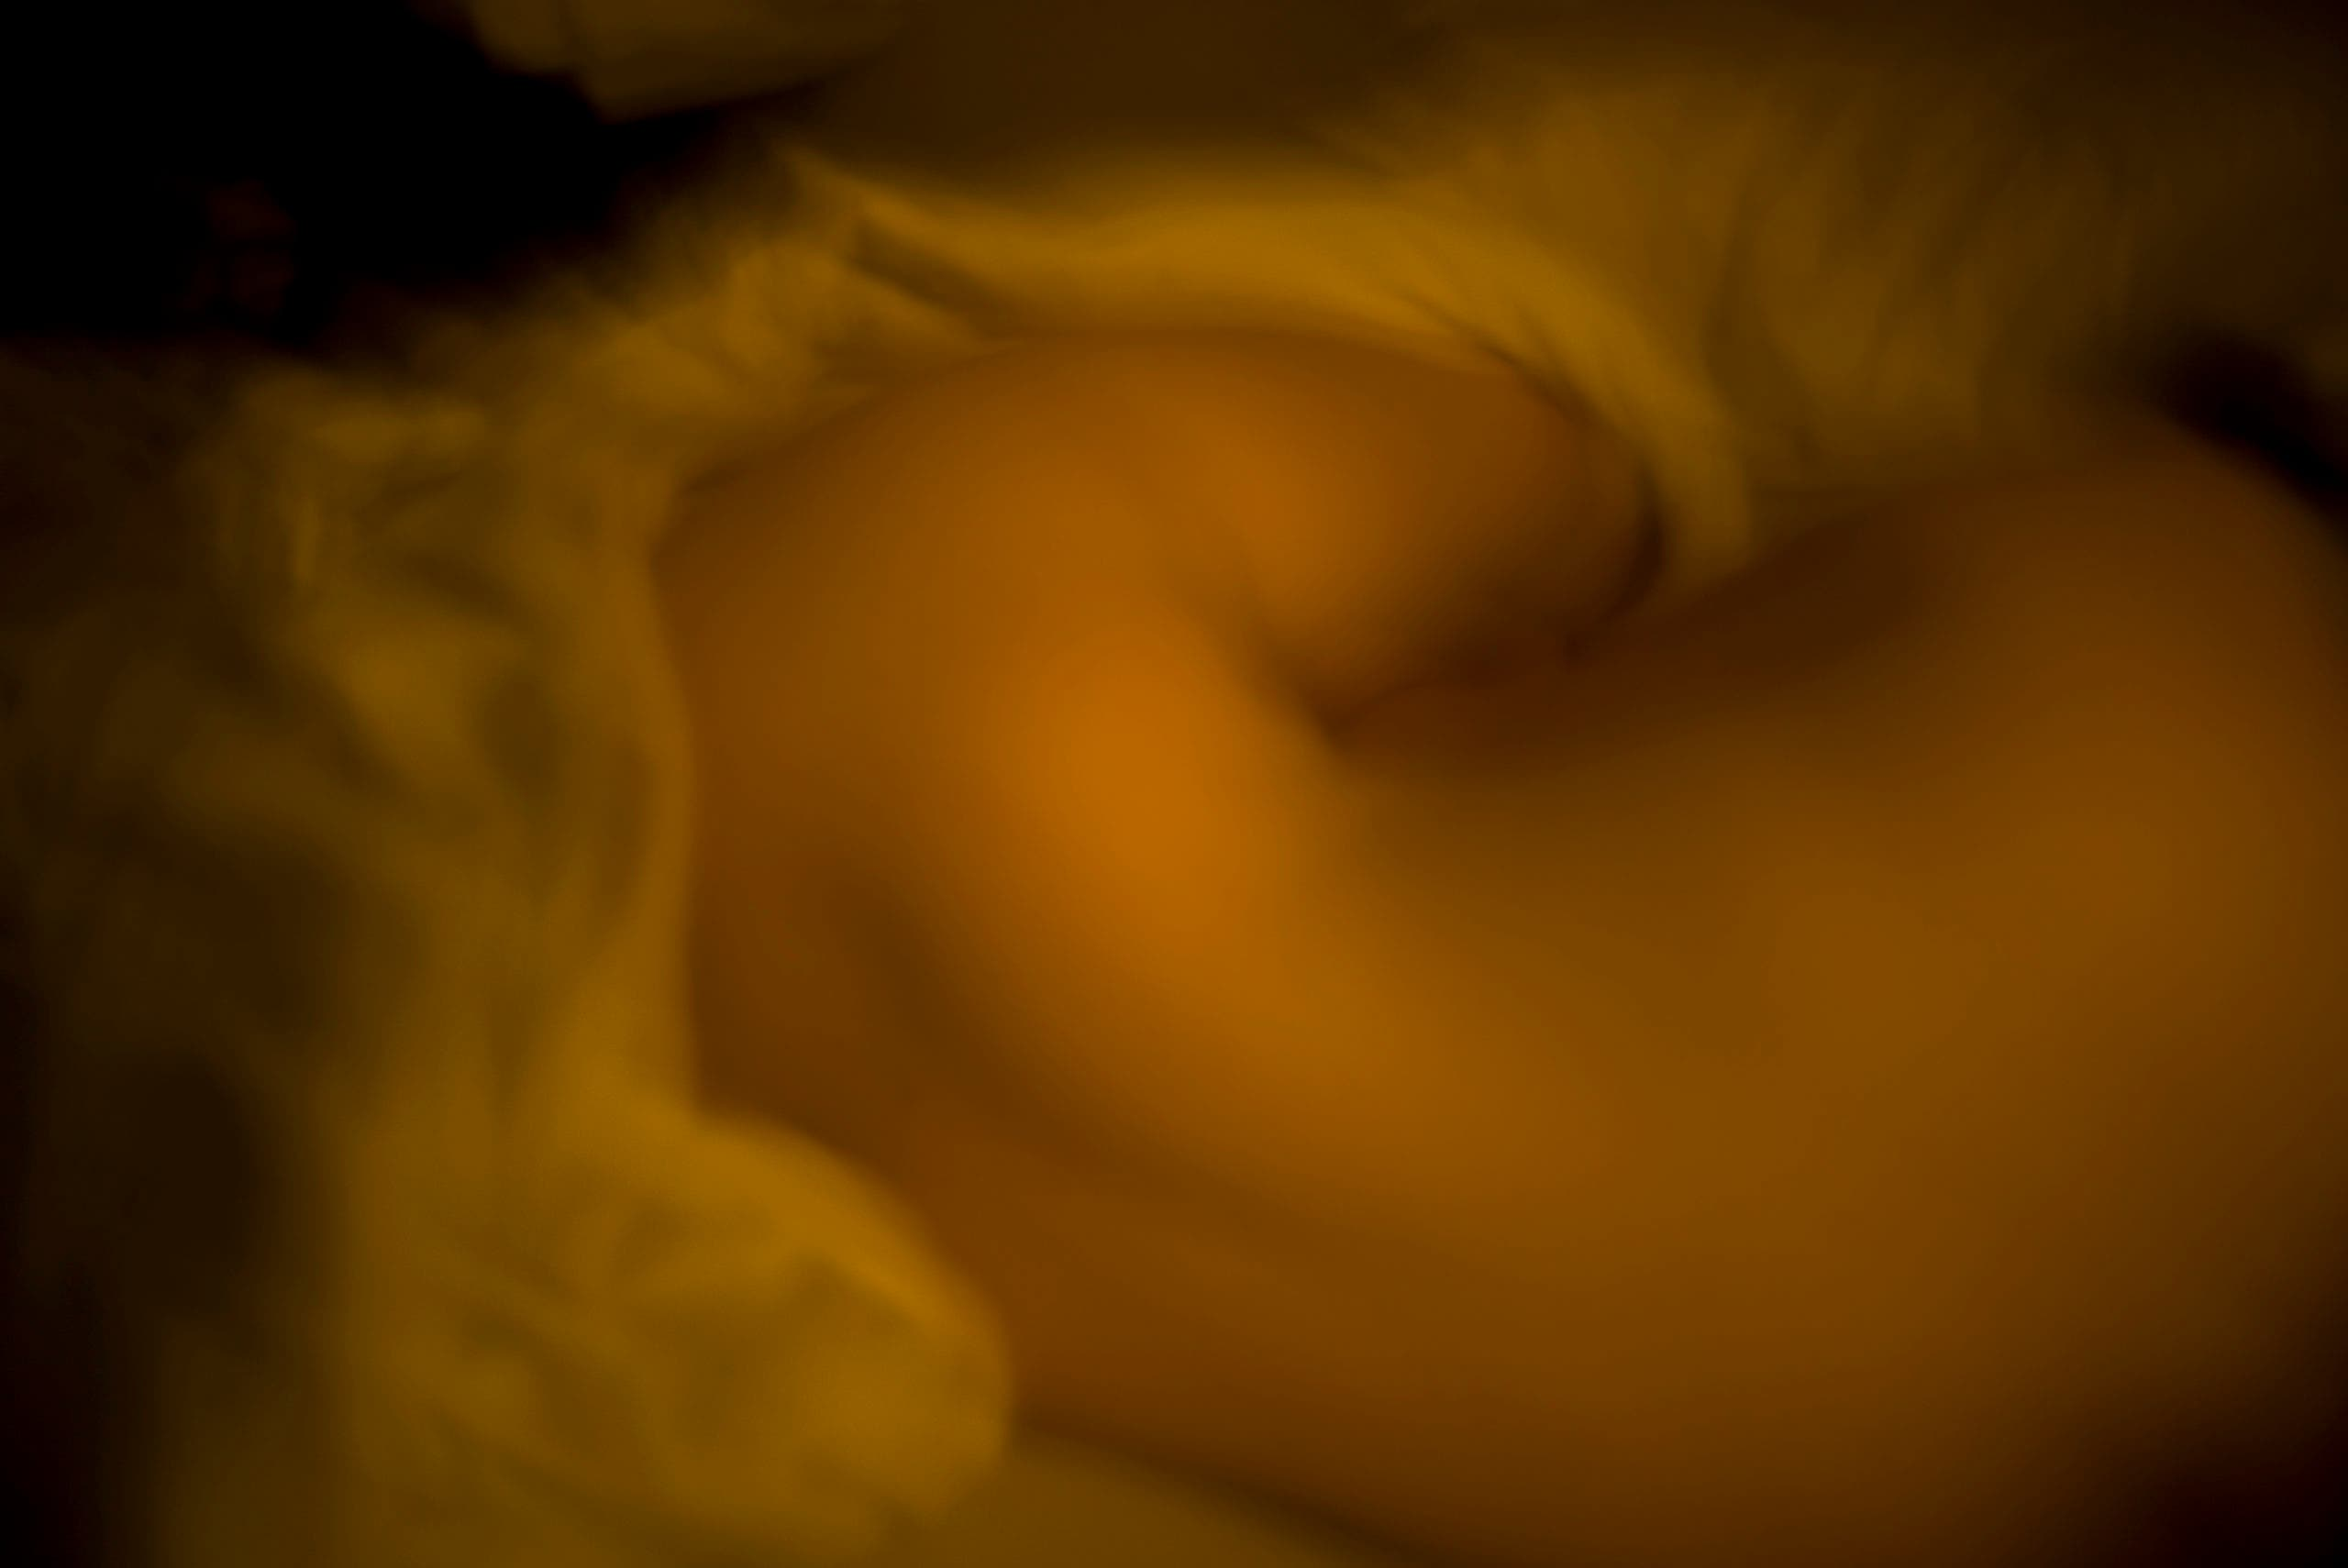 60 Seconds: The Human Form And Psyche in Long Exposure (NSFW)